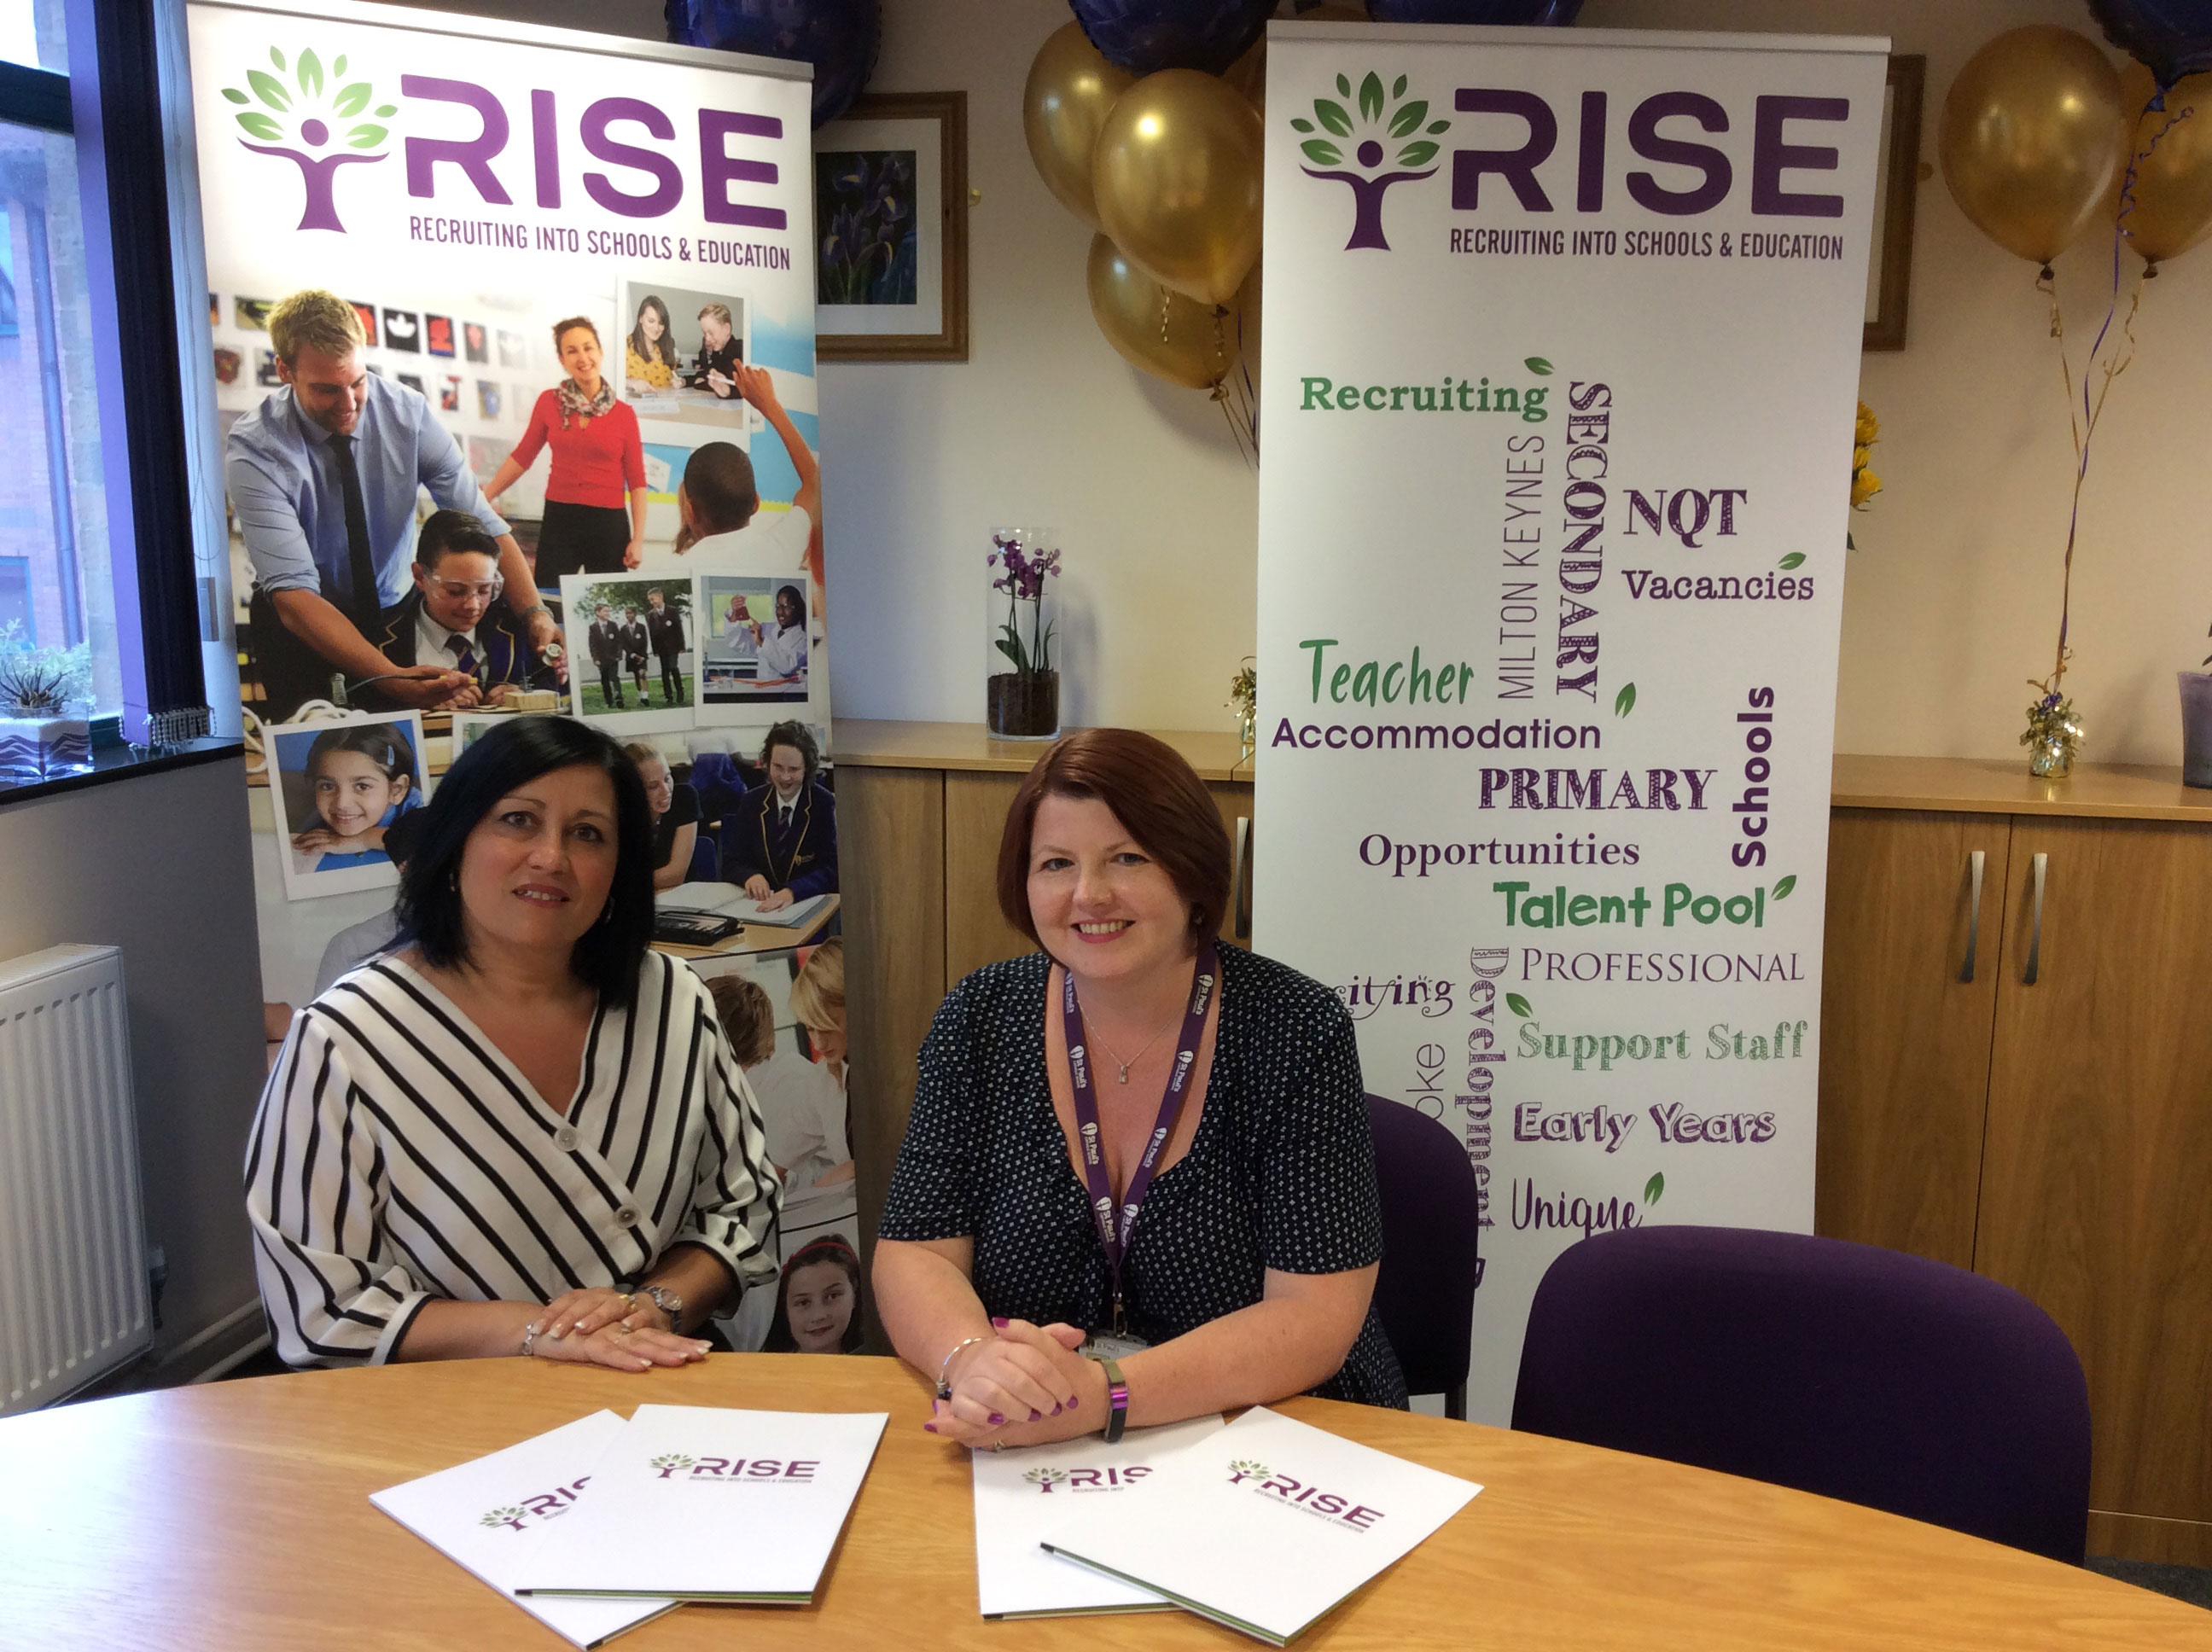 Maddy Oliveri and Jo-Anne Hoarty launch RISE